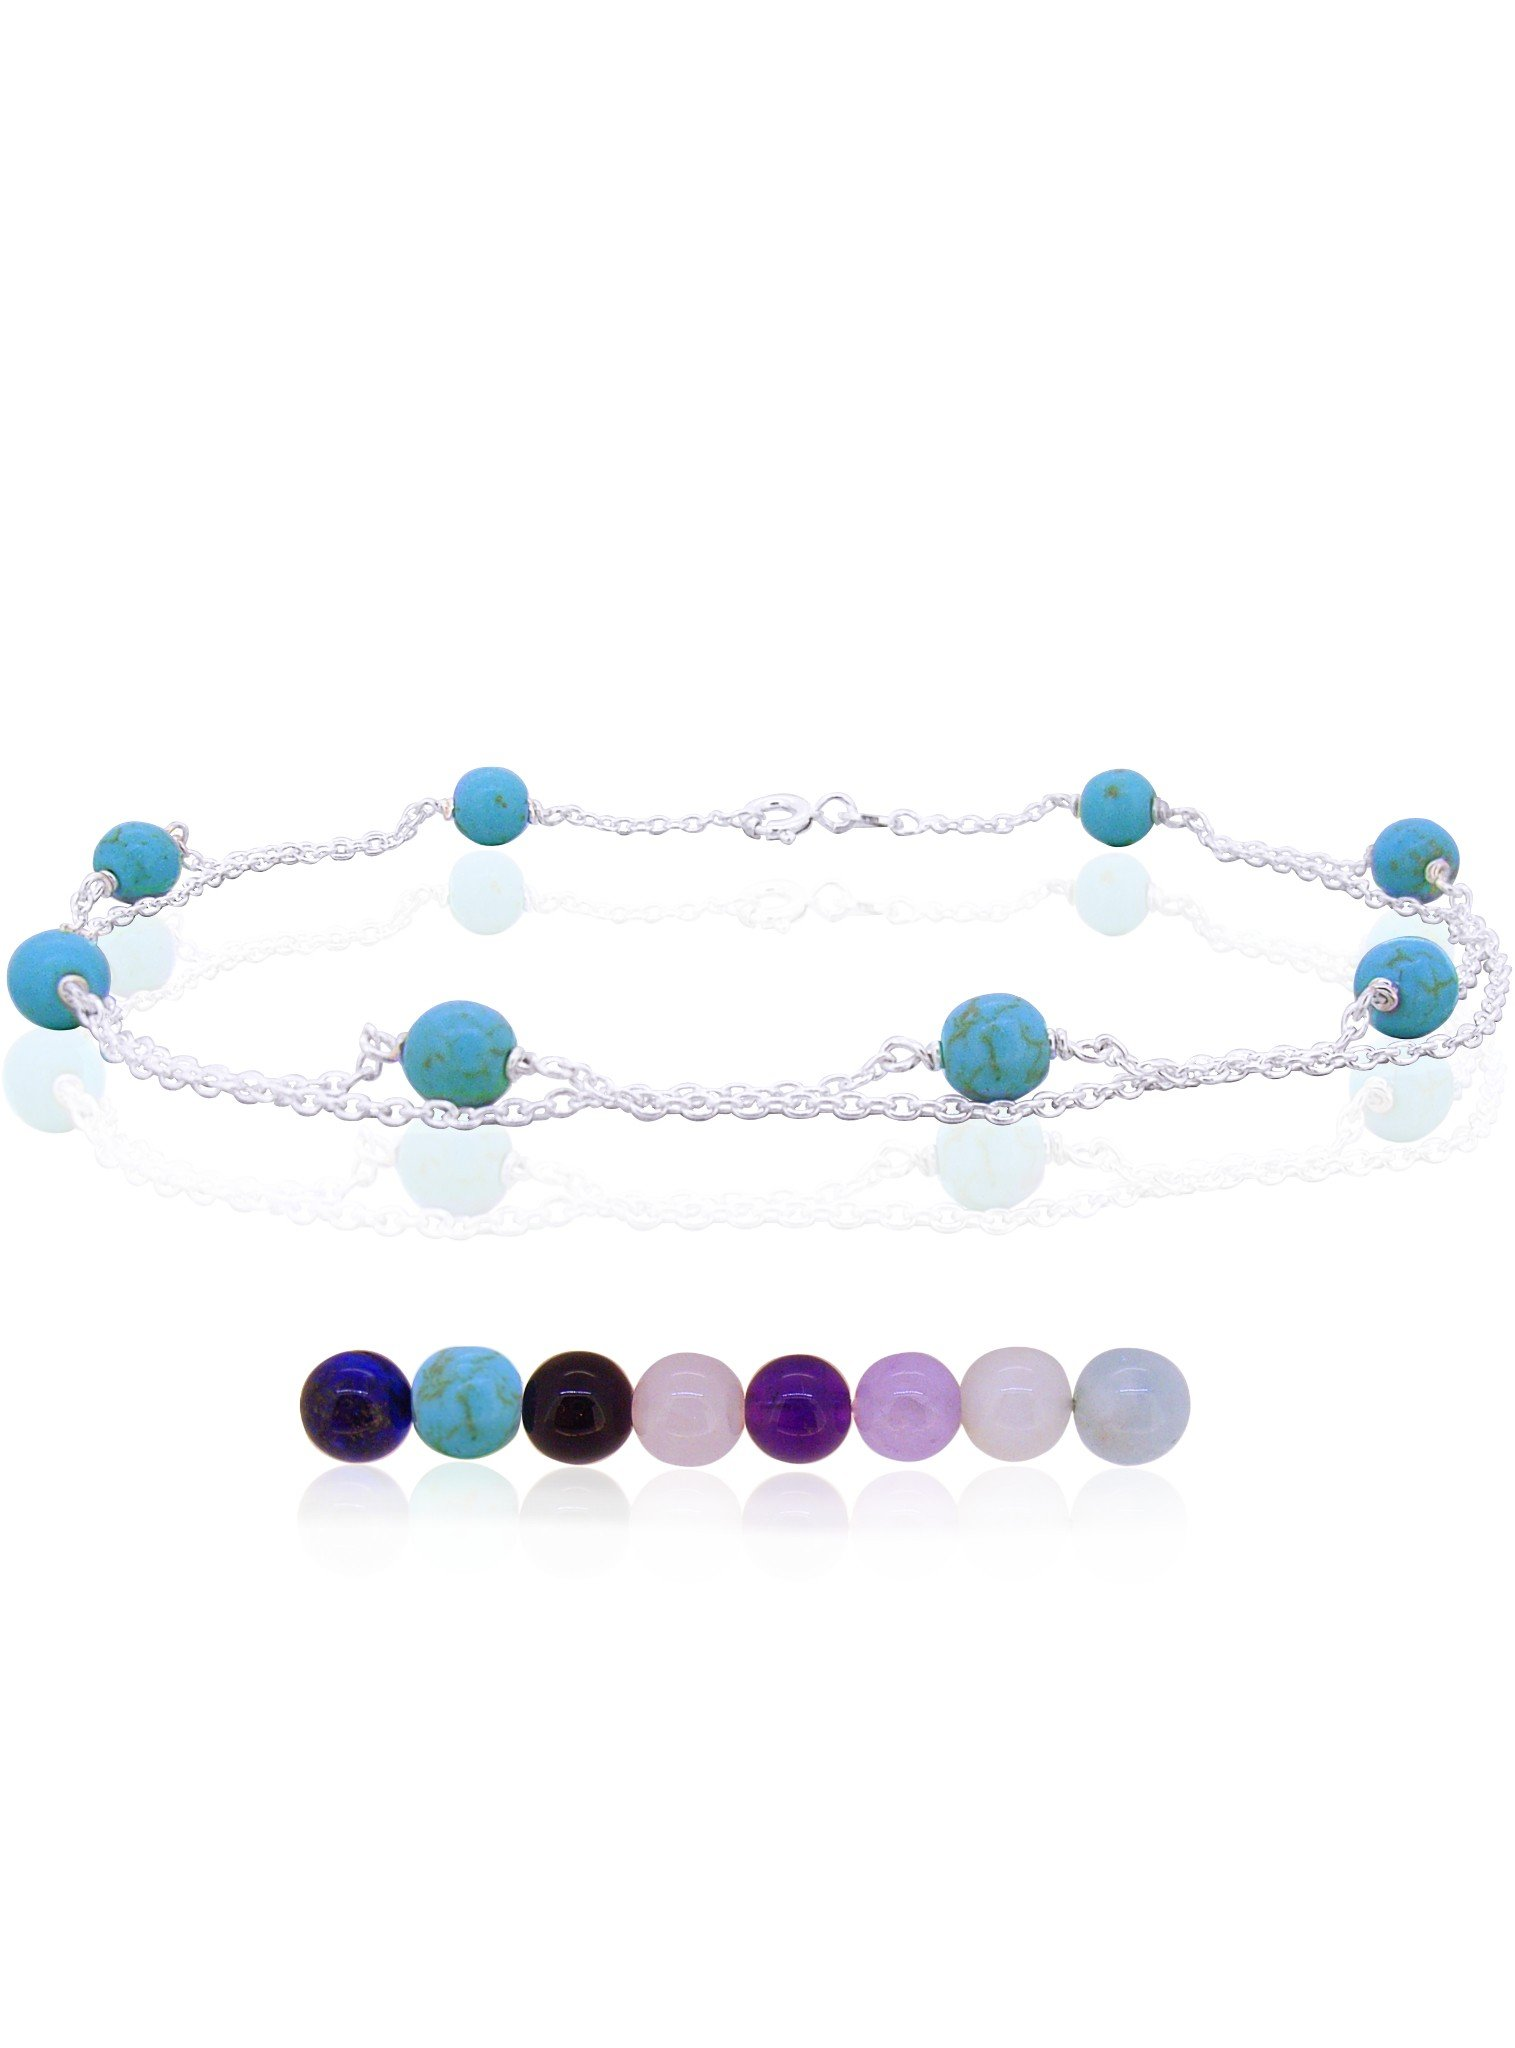 Anklet Chain with Gemstone Beads in Sterling Silver